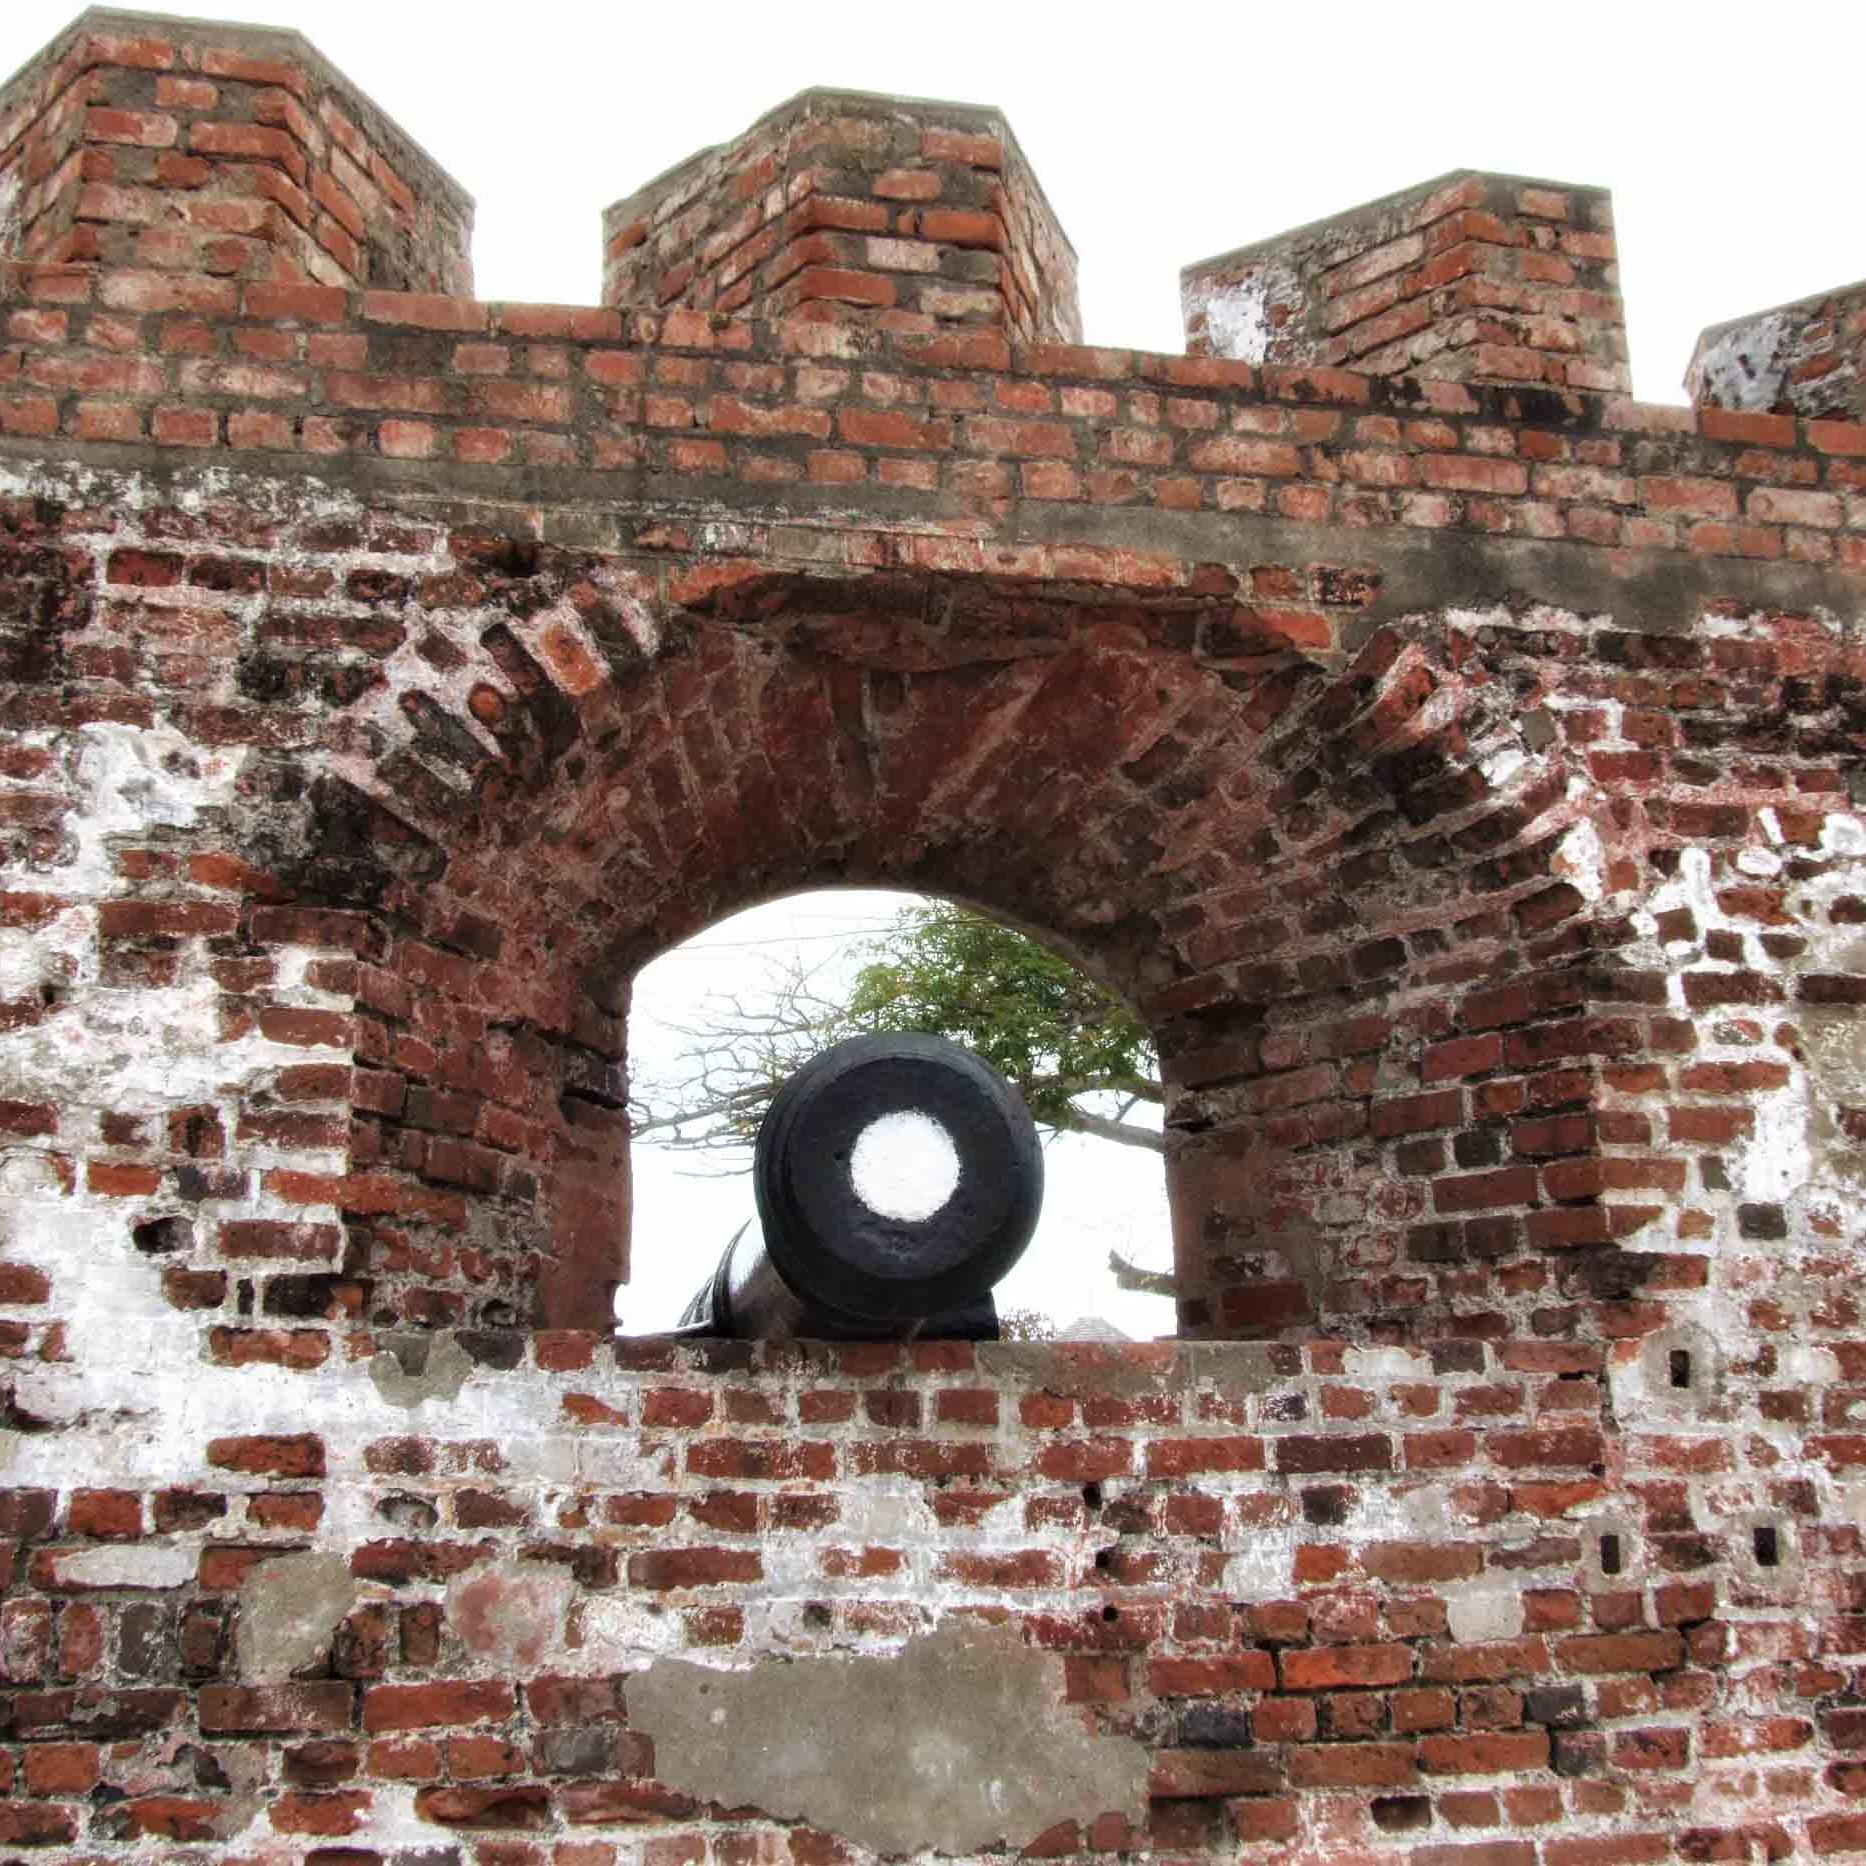 Cannon poking out of brick battlements